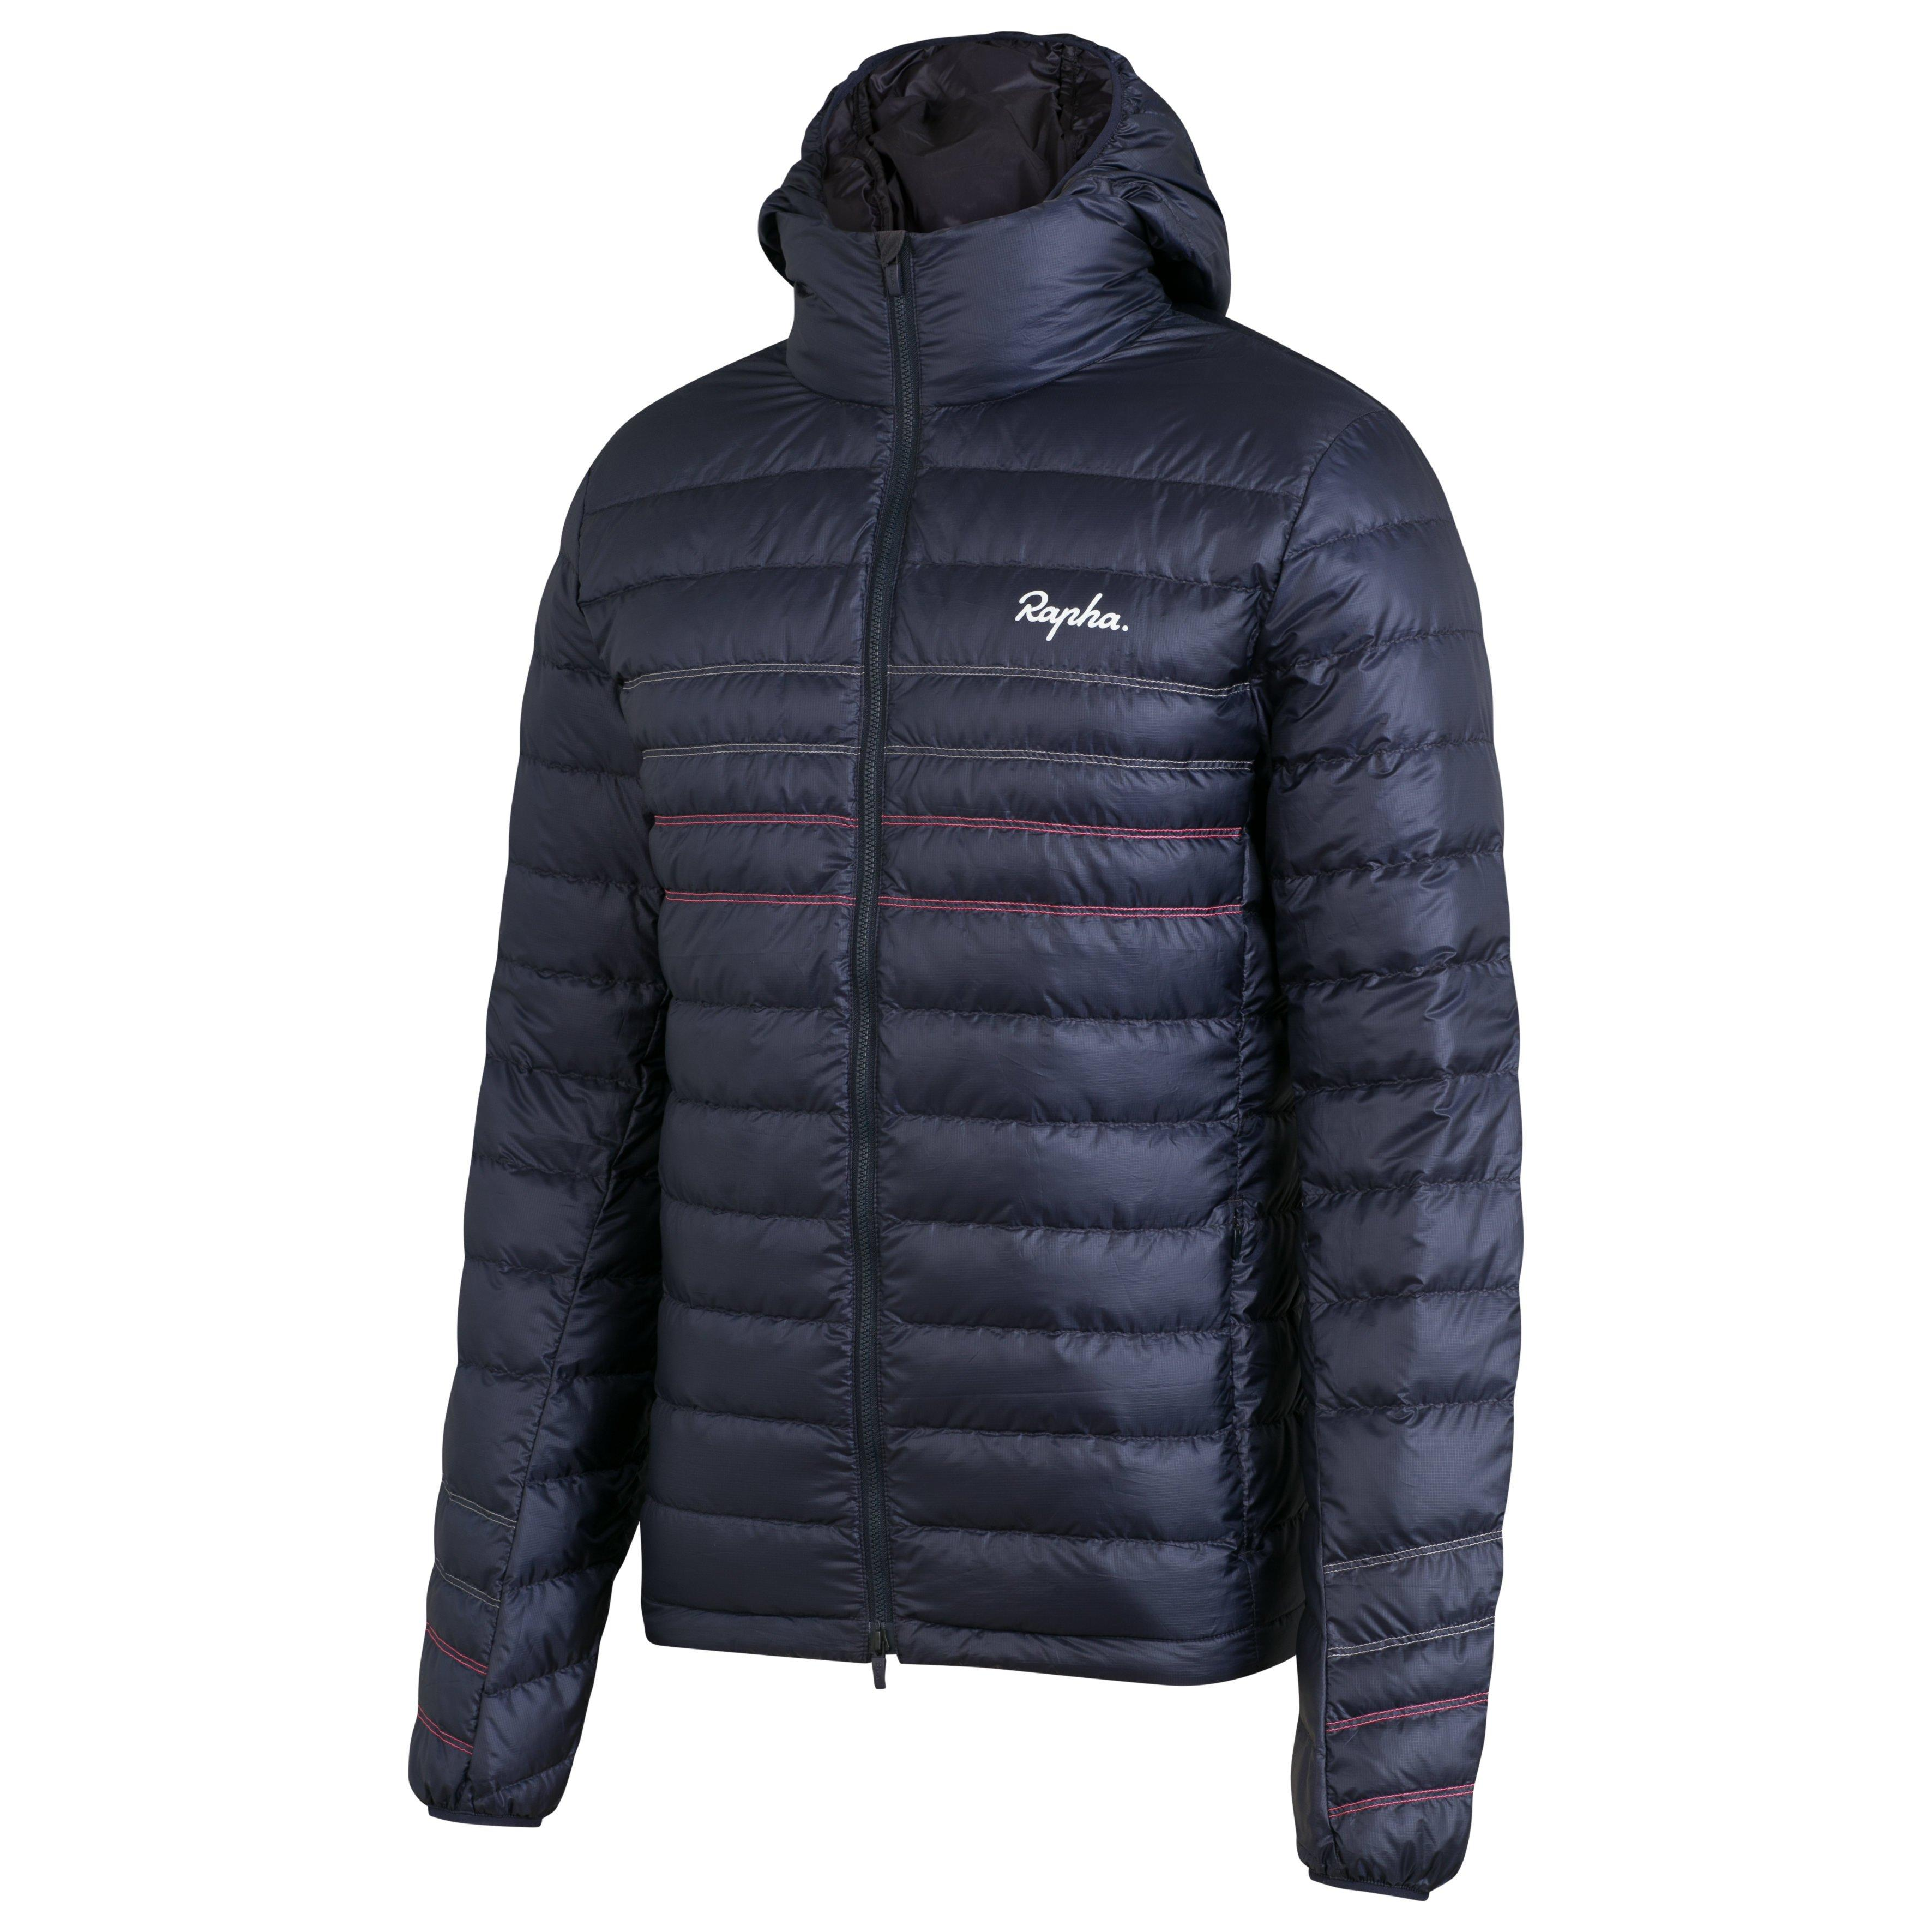 32 Degrees Men's Packable Down Jacket Transparent Puffer